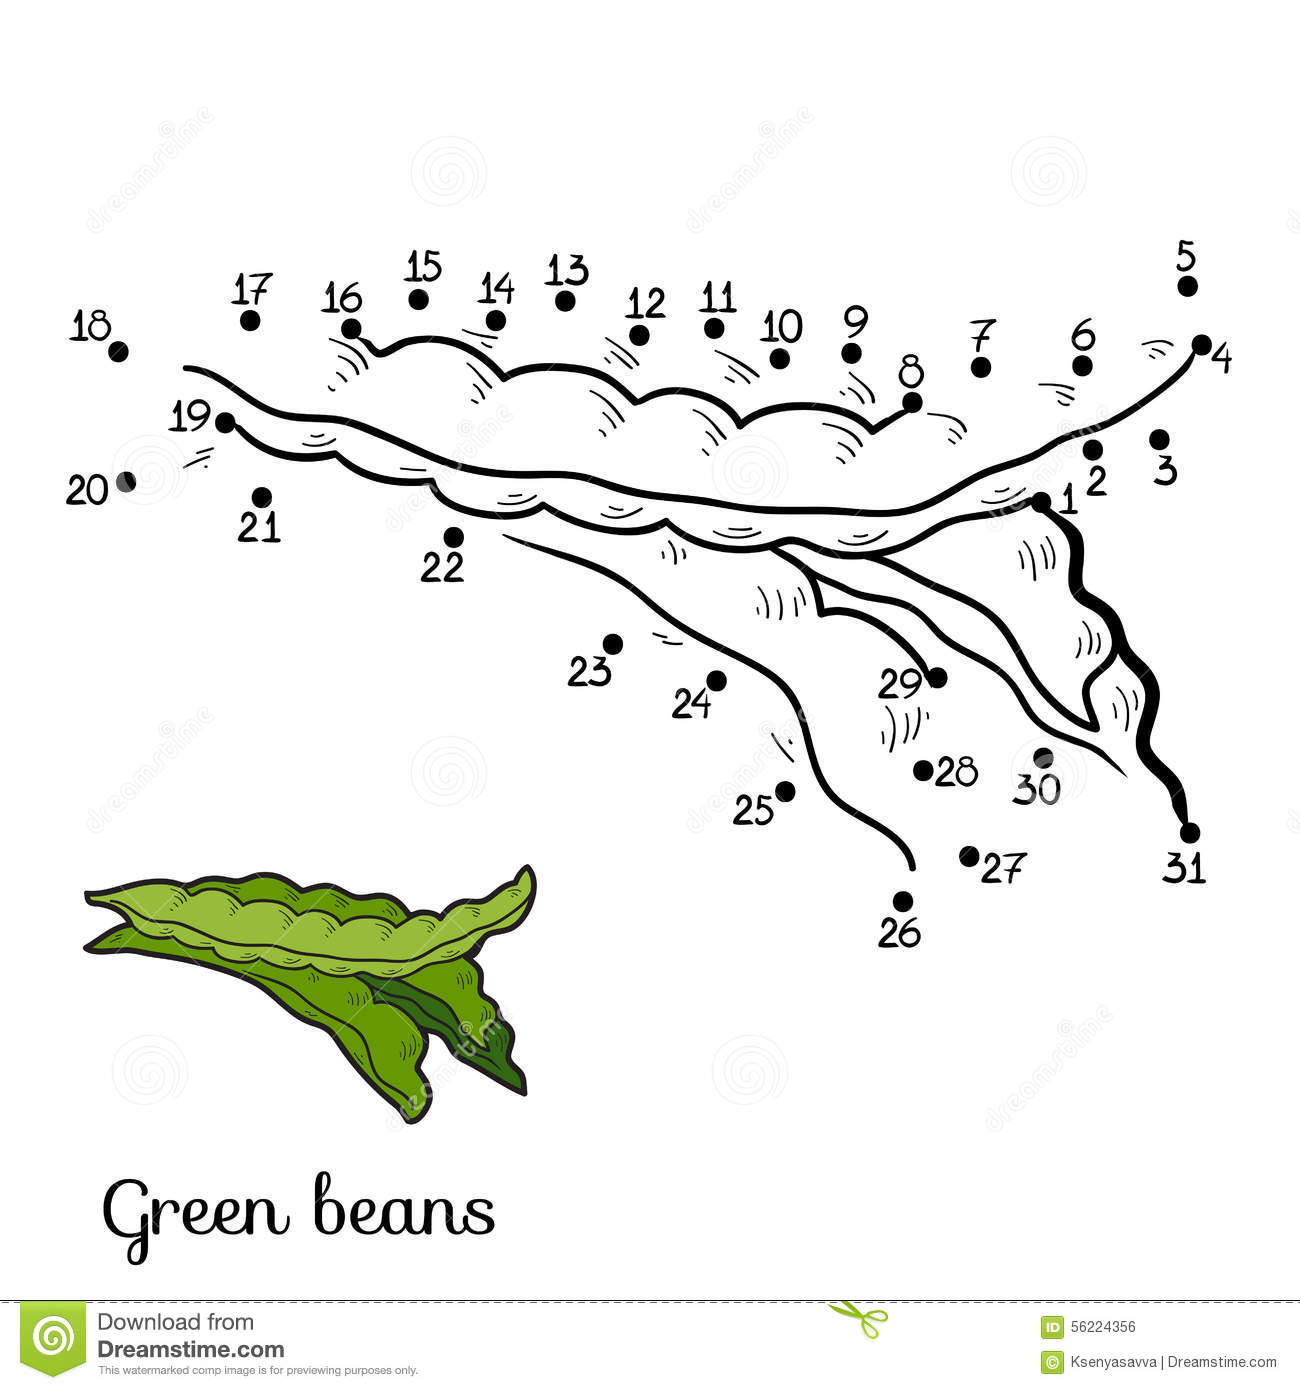 Coloring book: fruits and vegetables (green beans)